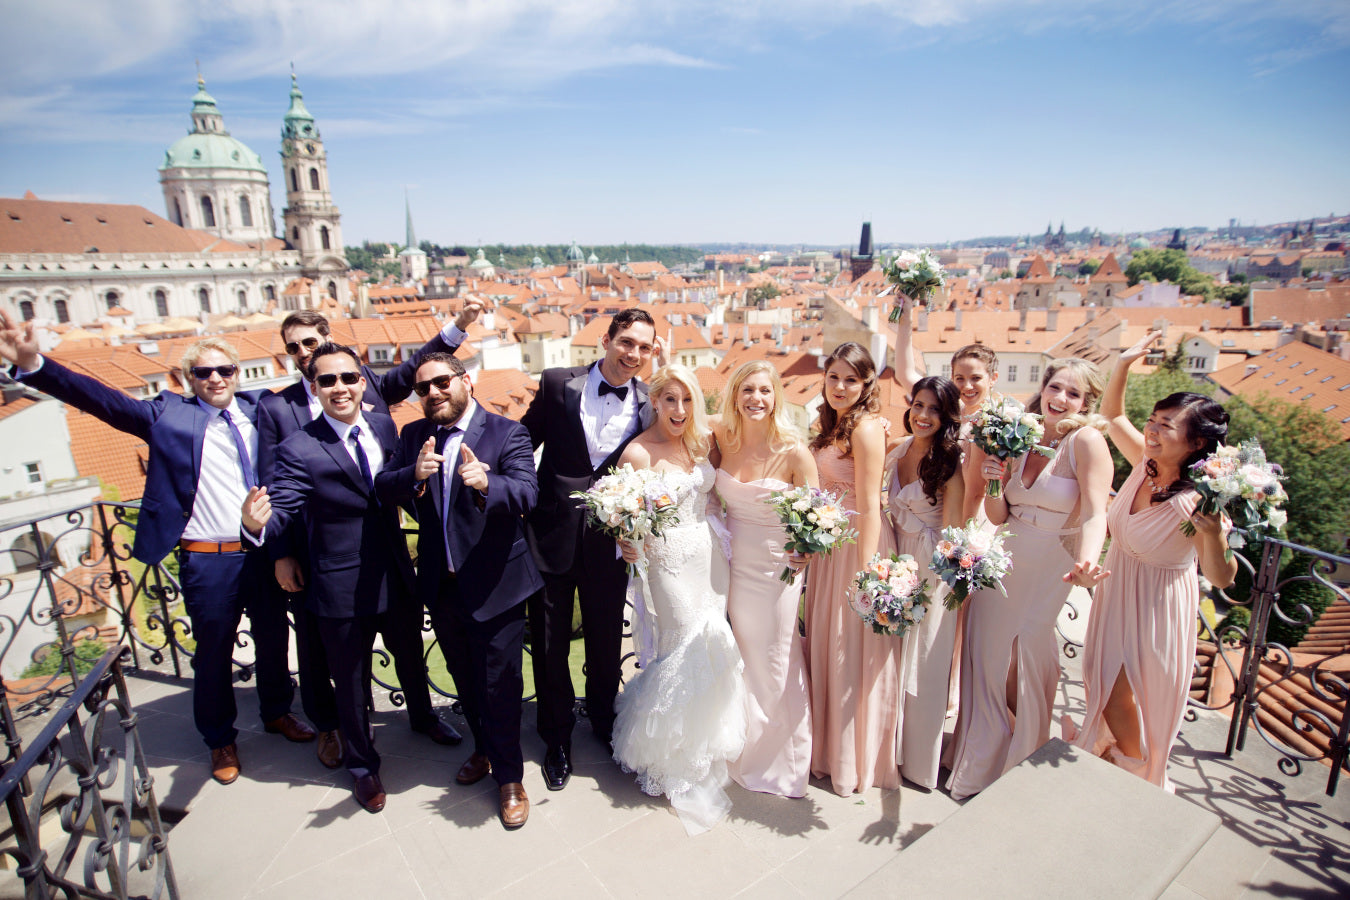 Bridal Party | Summer Wedding in Prague | Photography: Stepan Vrzala